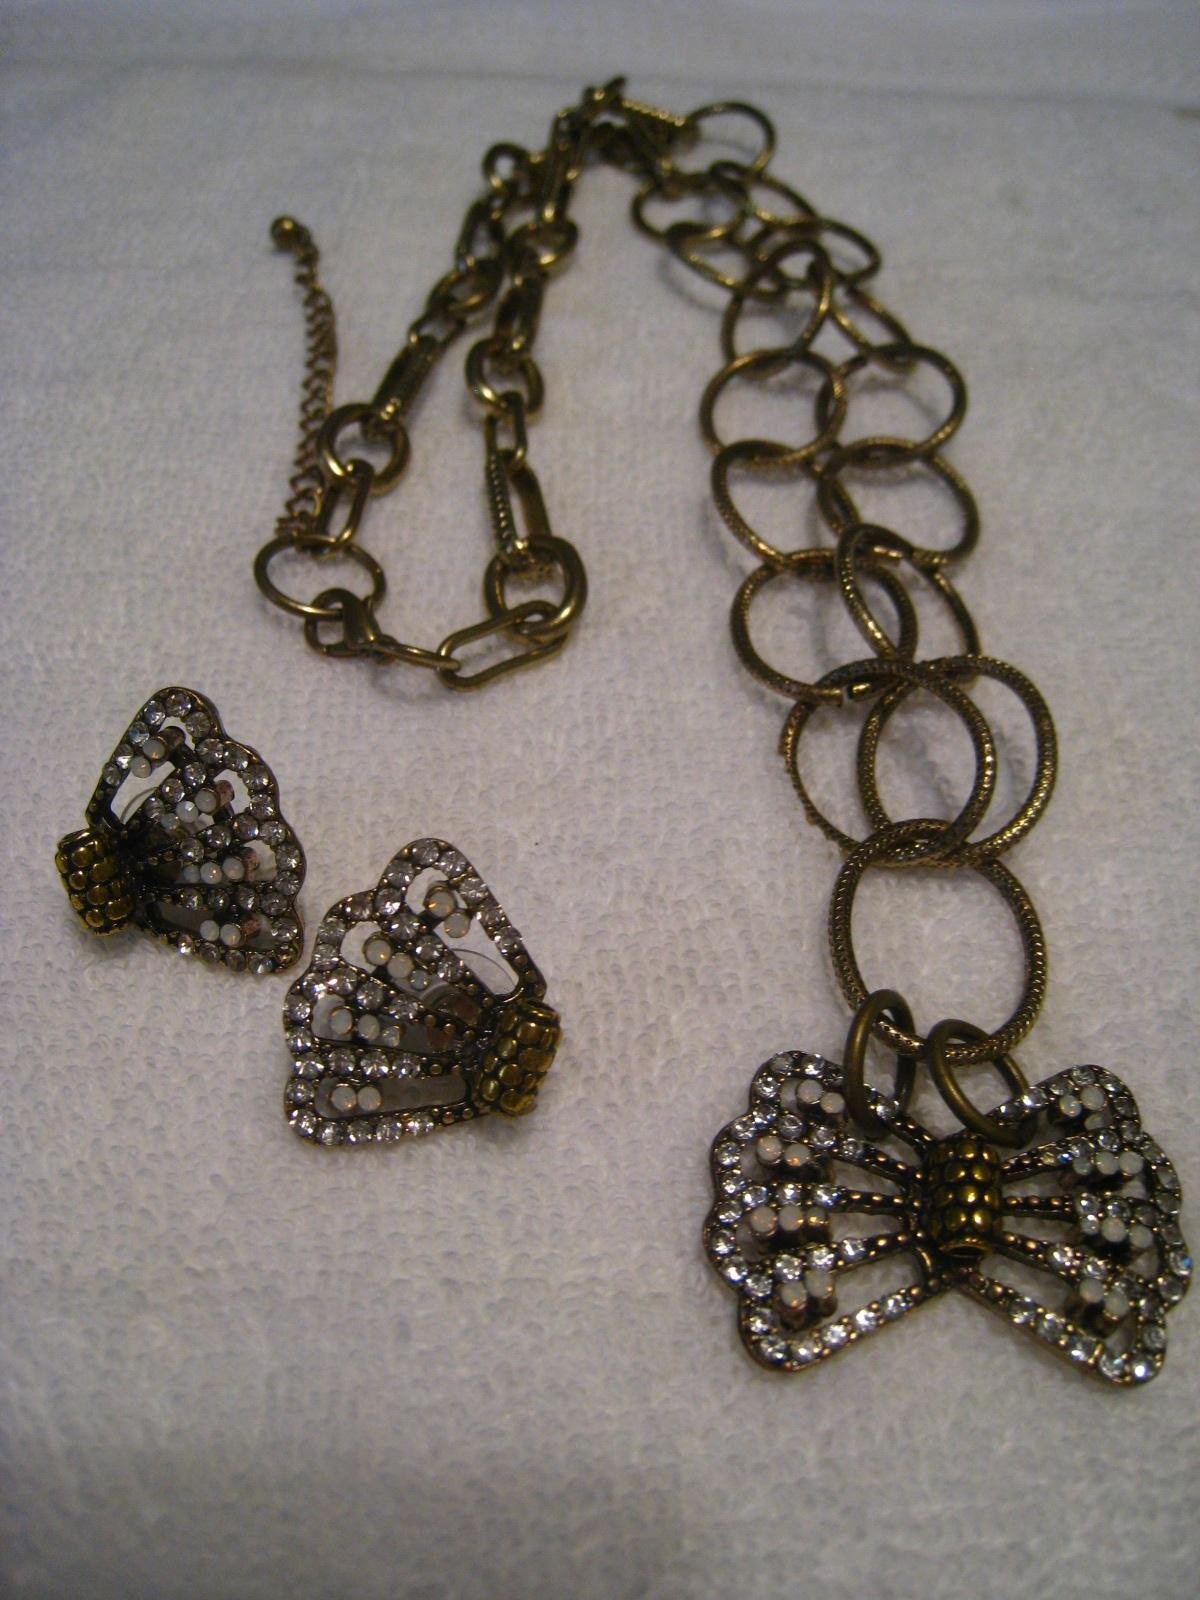 Necklace Pendant style with matching earrings